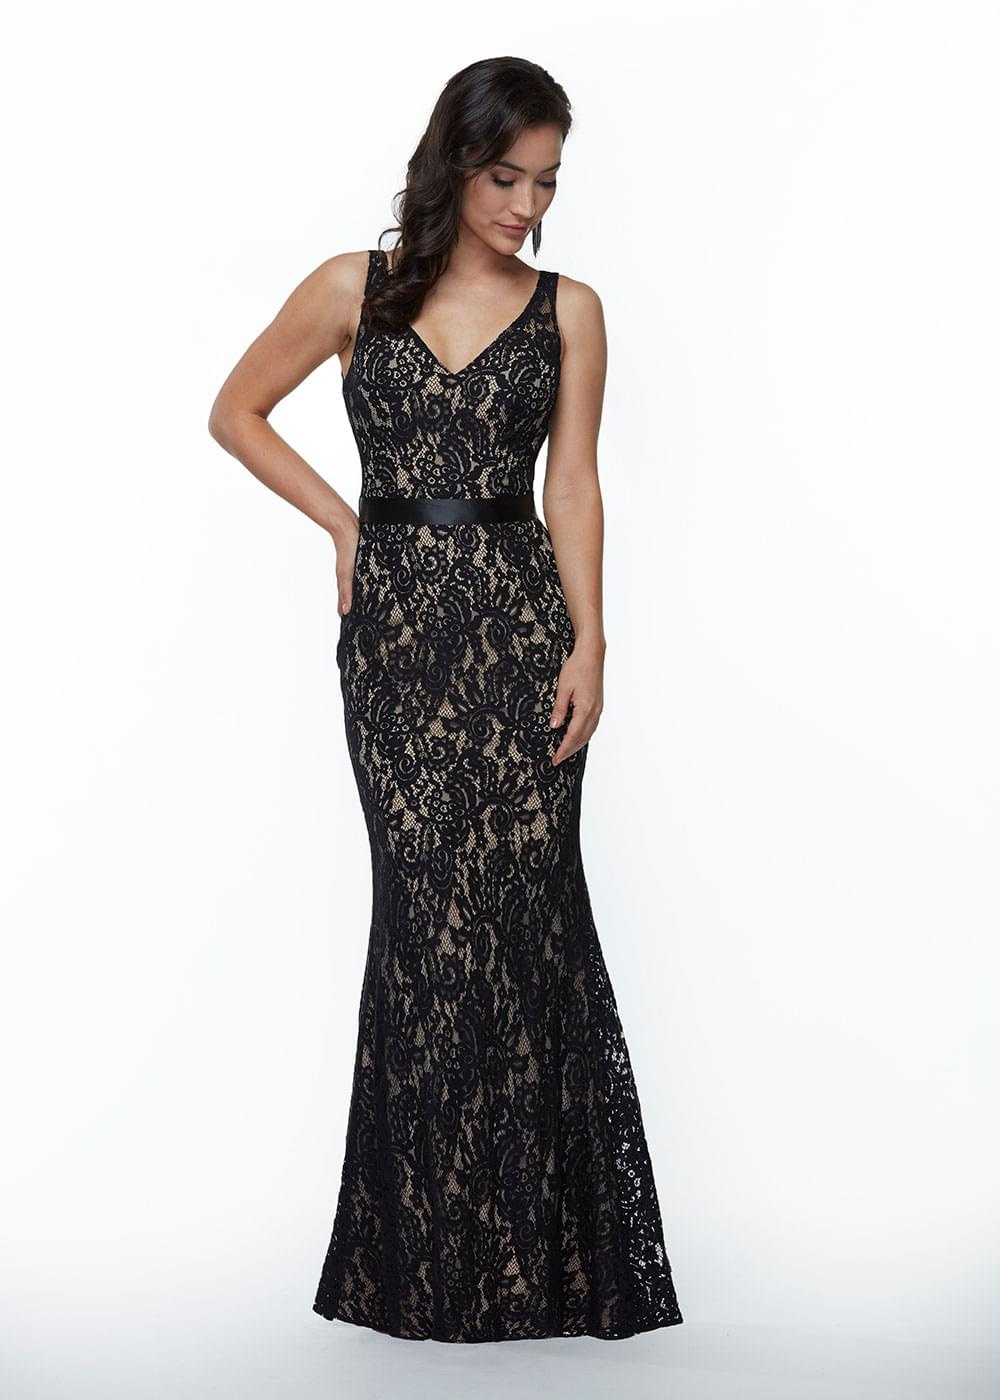 80086 Dresses with Straps By Ashdon